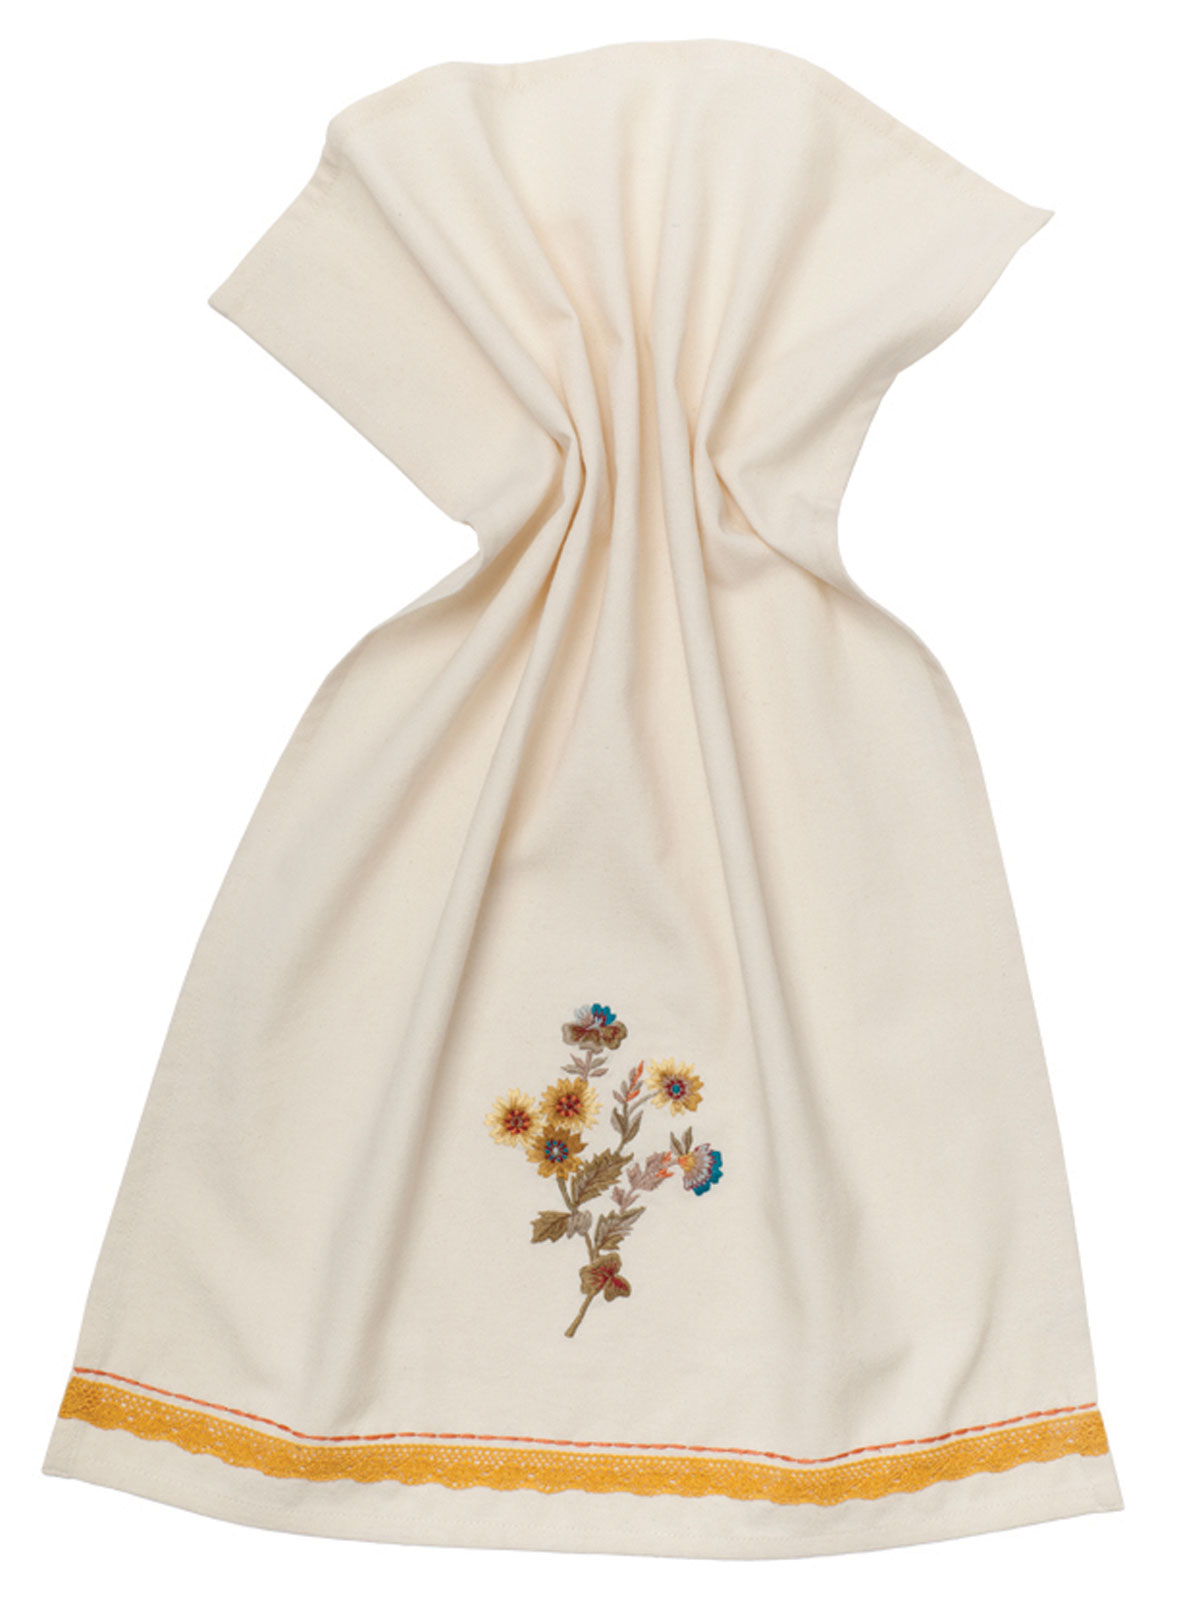 machine embroidery designs for tea towels